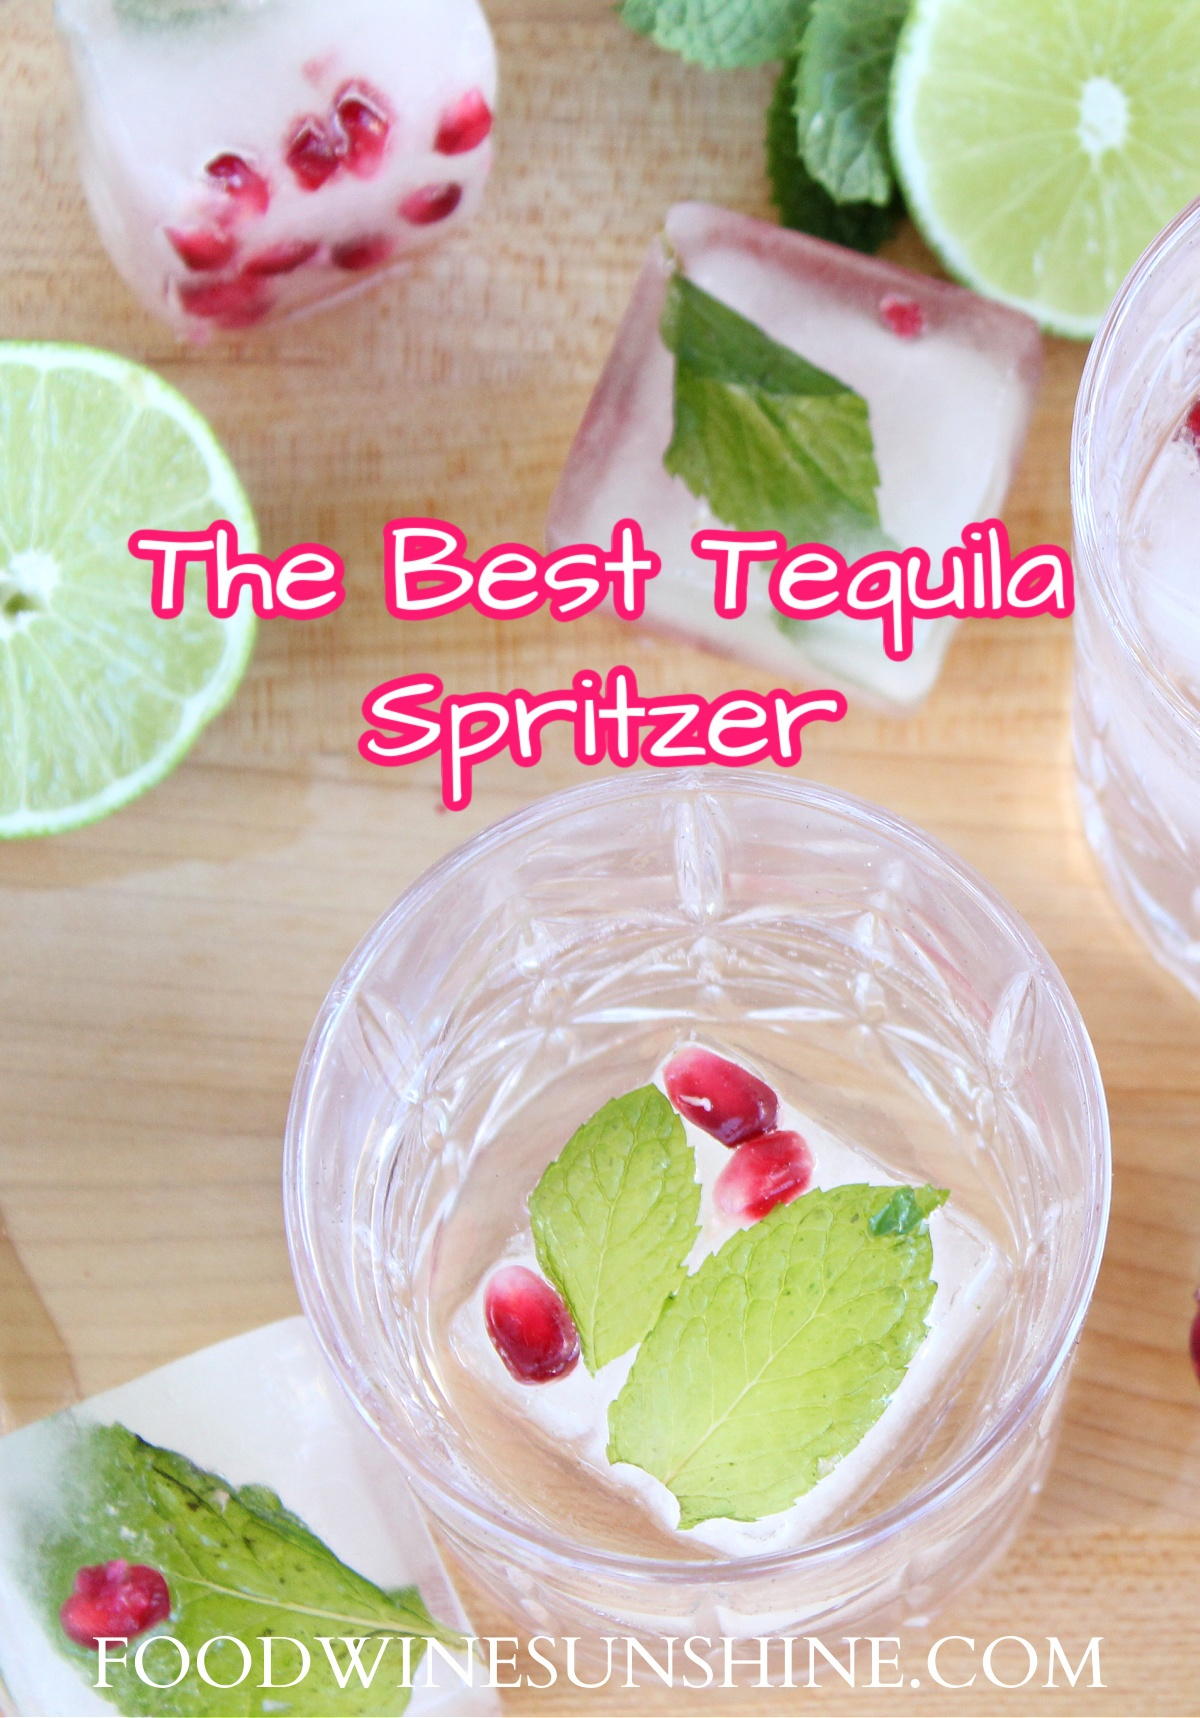 How to make a tequila spritzer